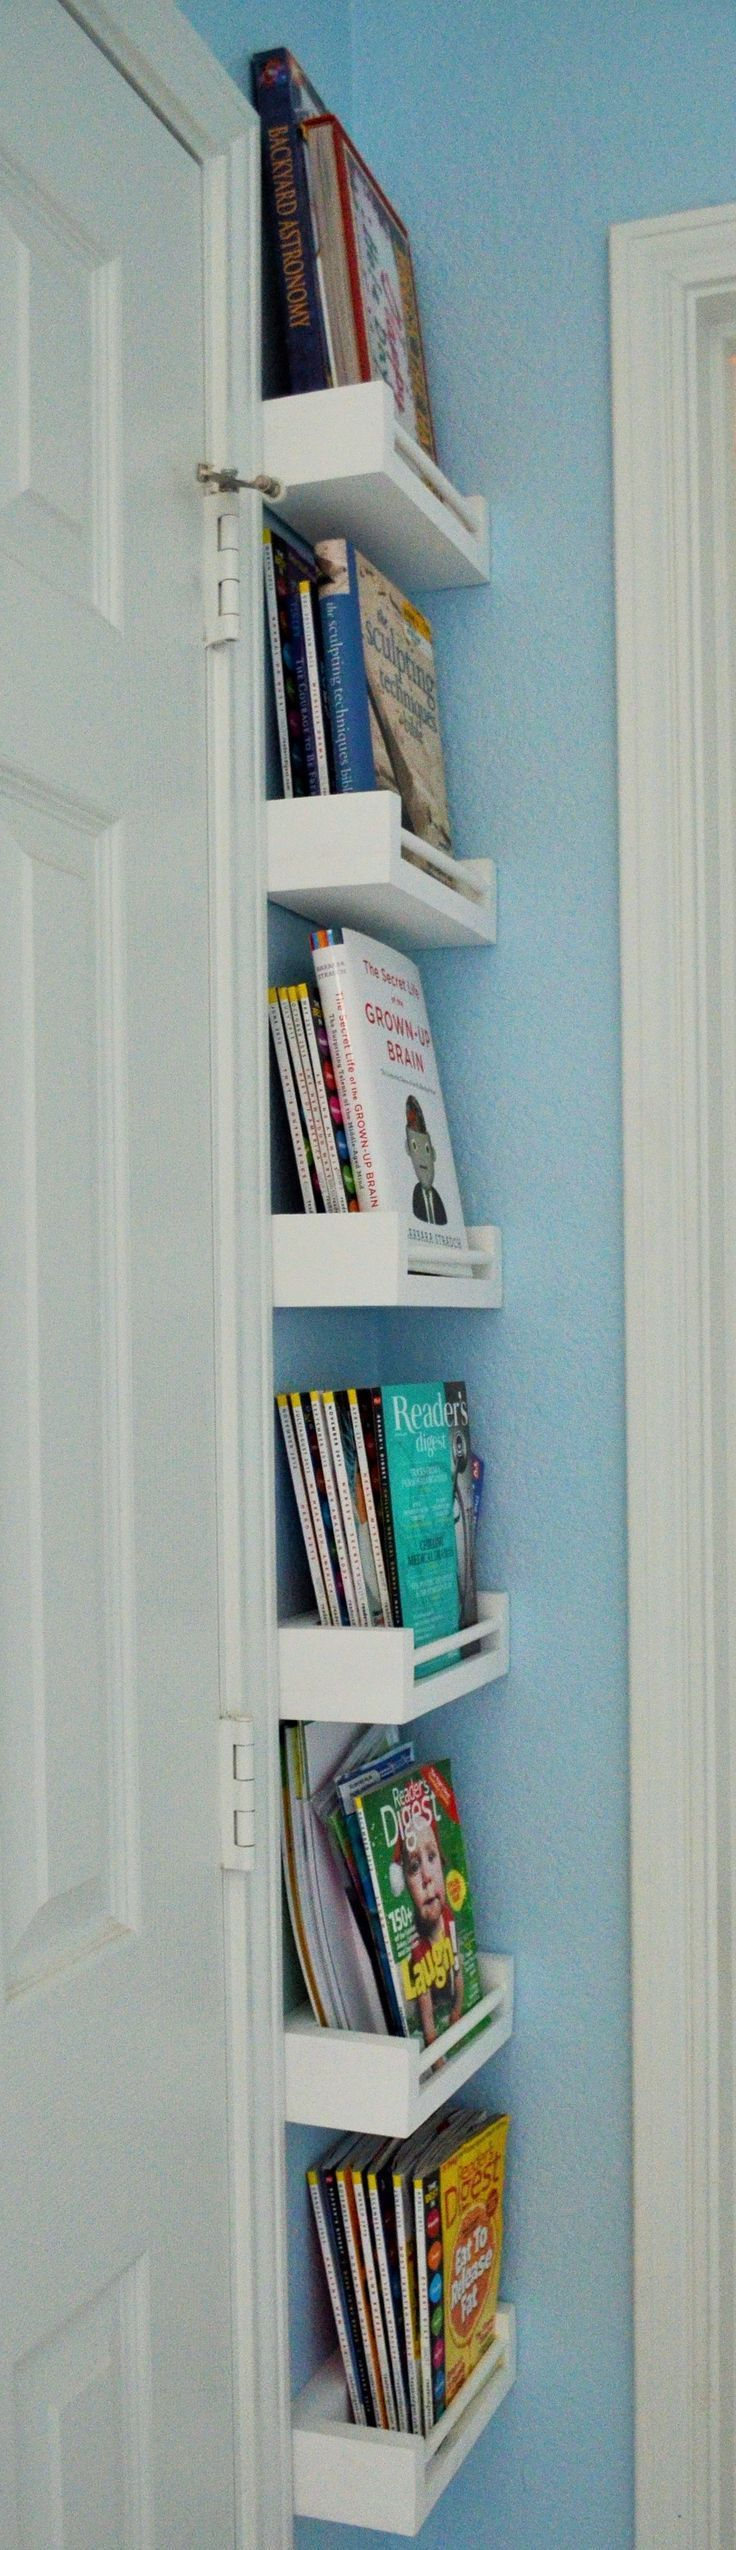 small corner bookshelves work great for behind door - Storage For Small Spaces Rooms